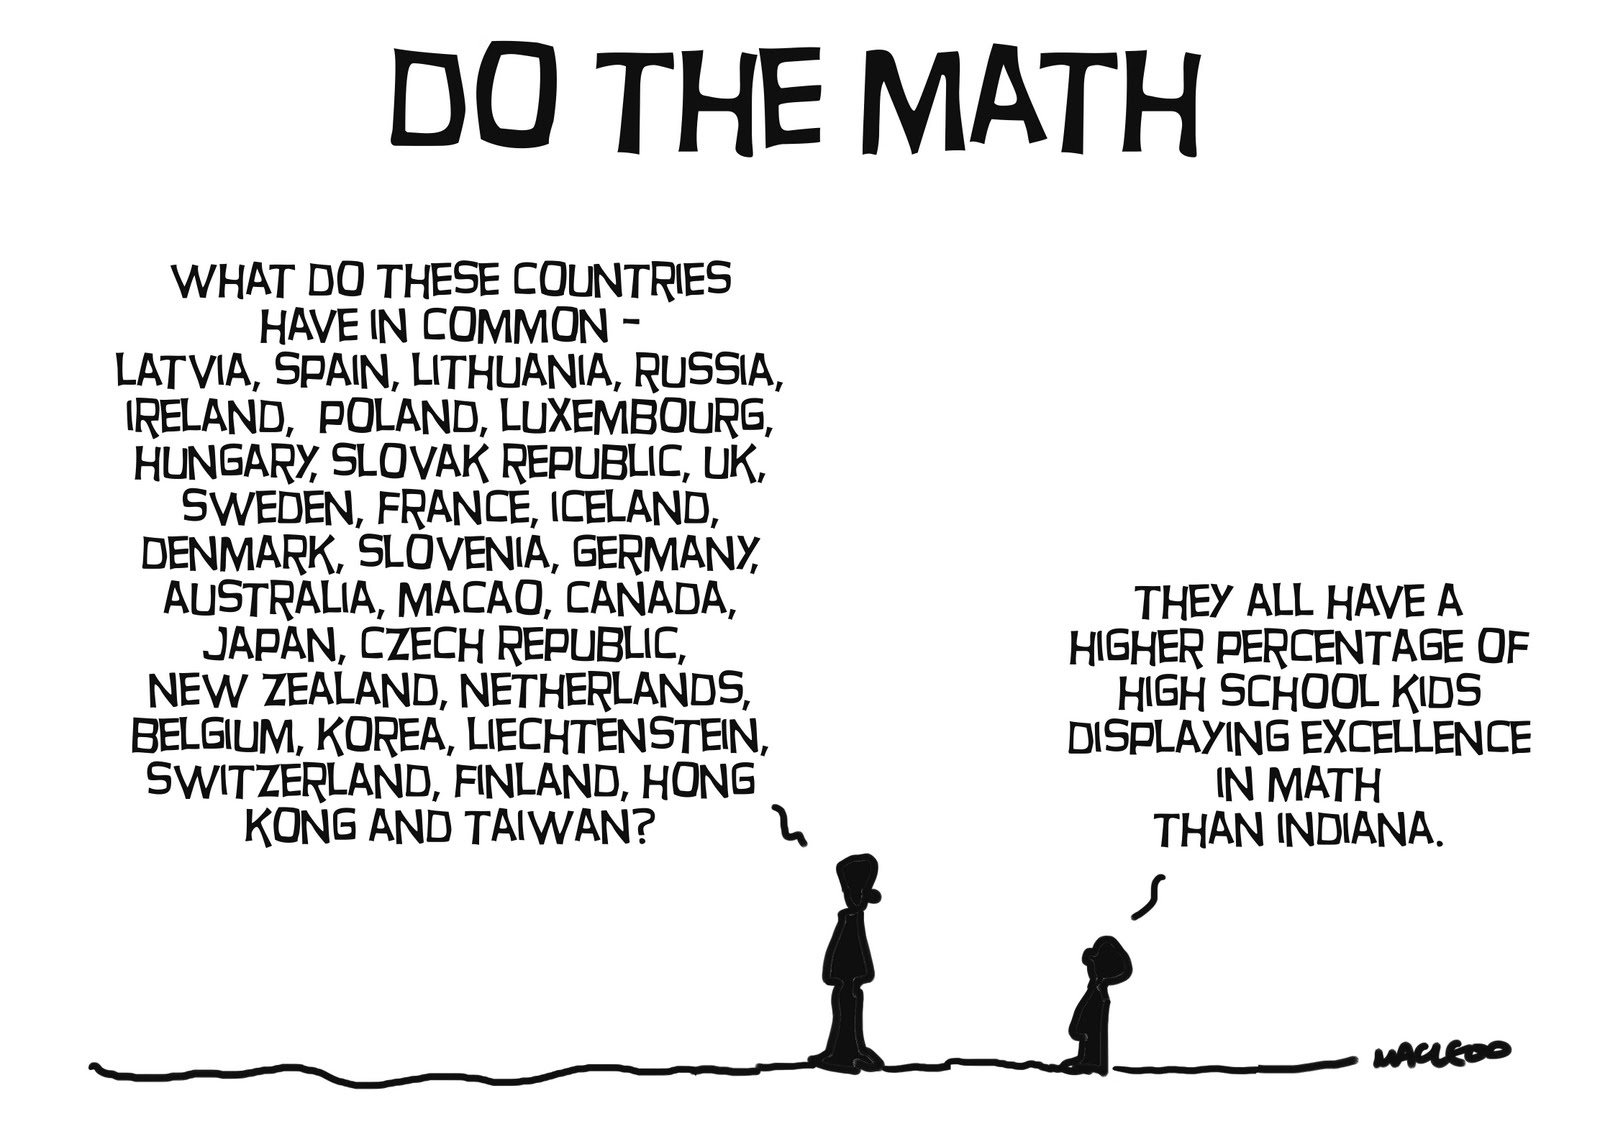 McLeod Cartoons on U.S. math achievement